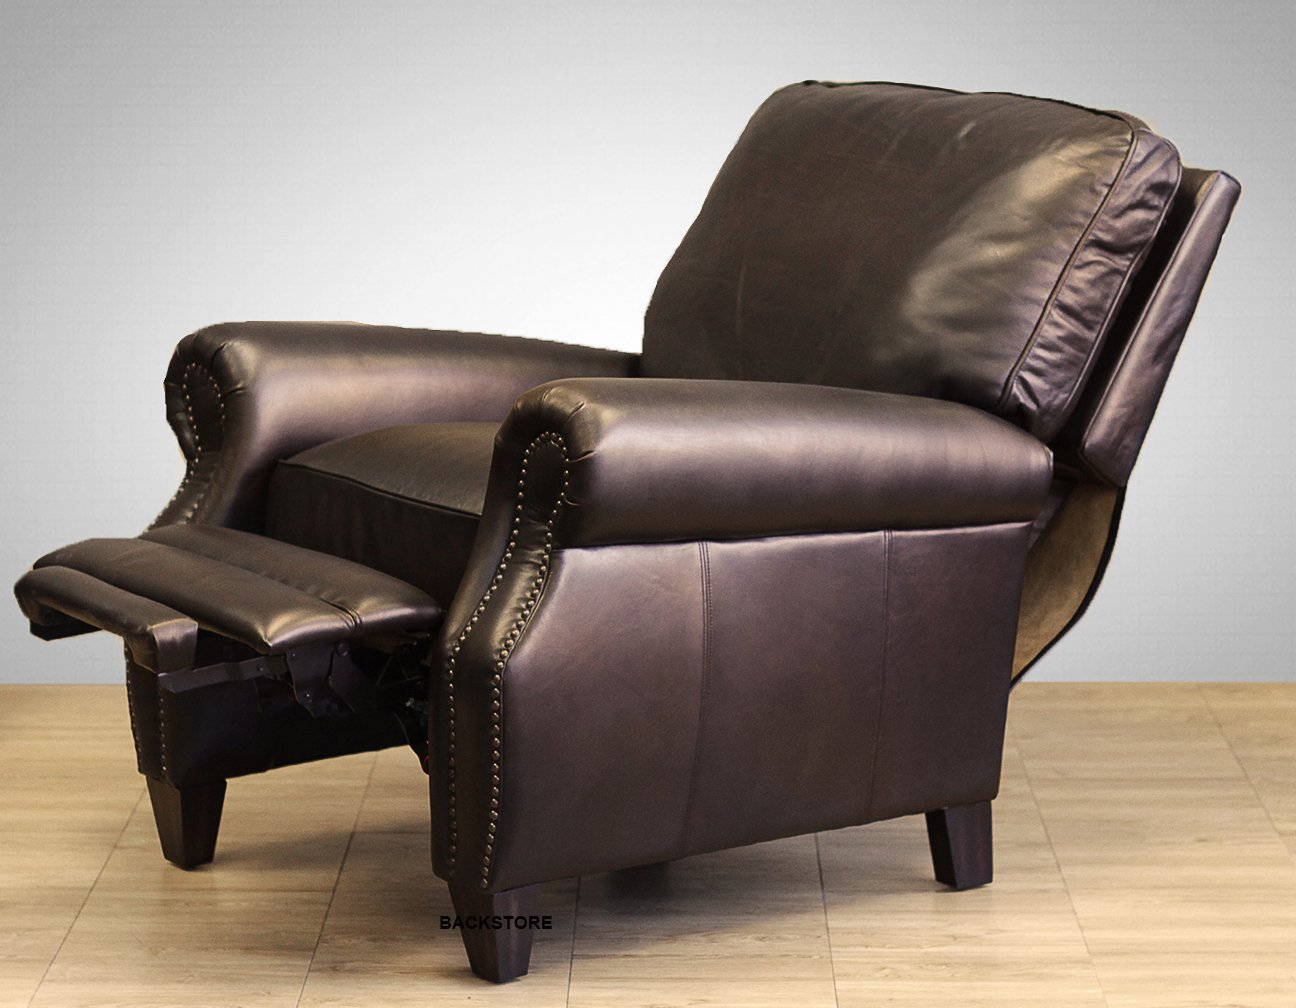 Amazon.com BarcaLounger Briarwood II Recliner - Stetson Coffee Kitchen u0026 Dining & Amazon.com: BarcaLounger Briarwood II Recliner - Stetson Coffee ... islam-shia.org